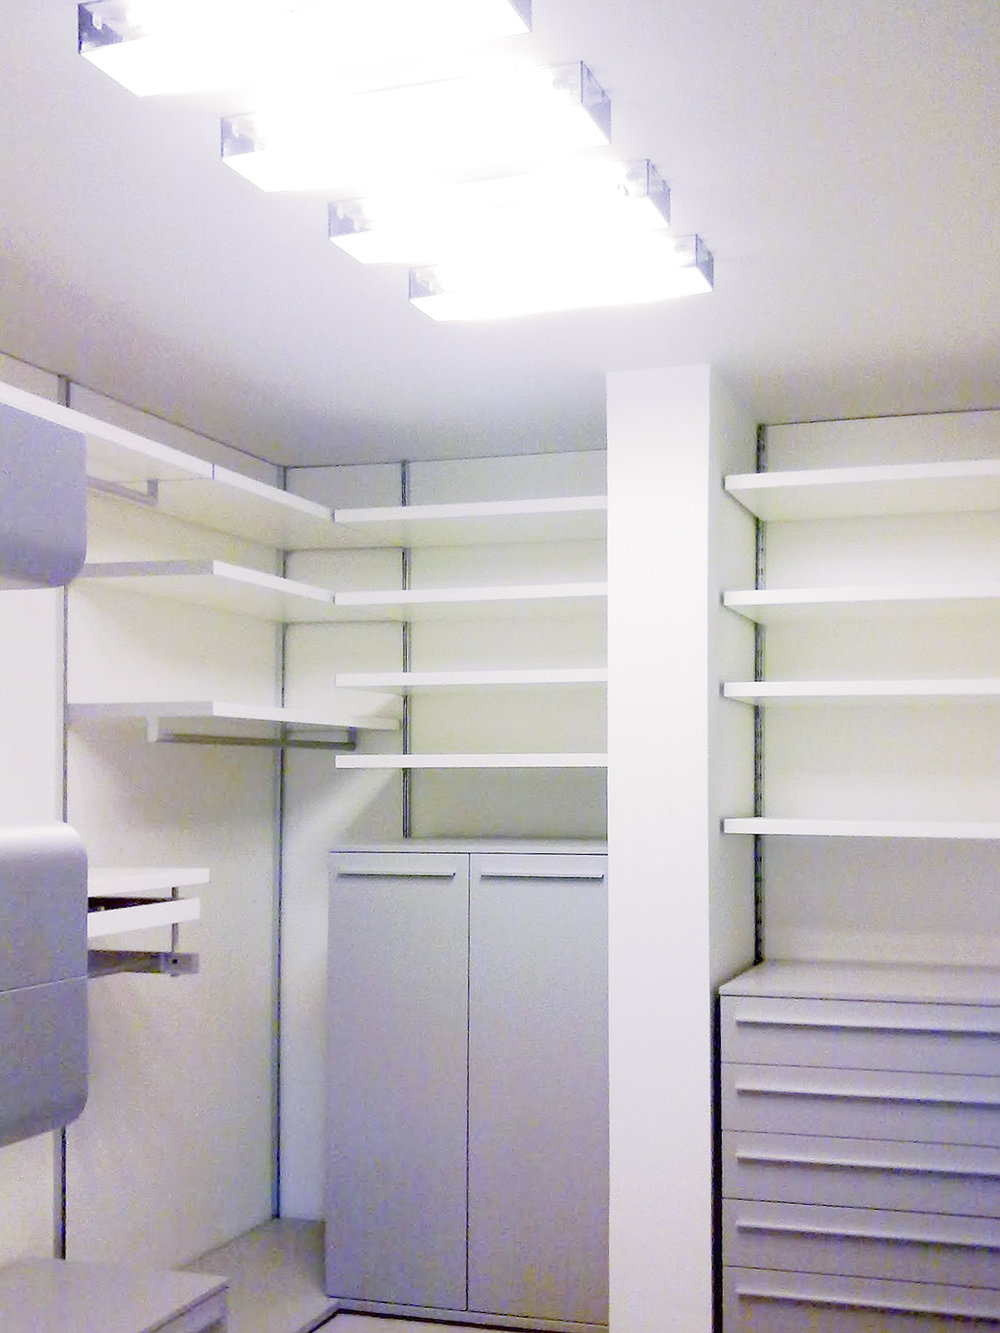 modern walk-in closet cabinets with surface light on ceiling